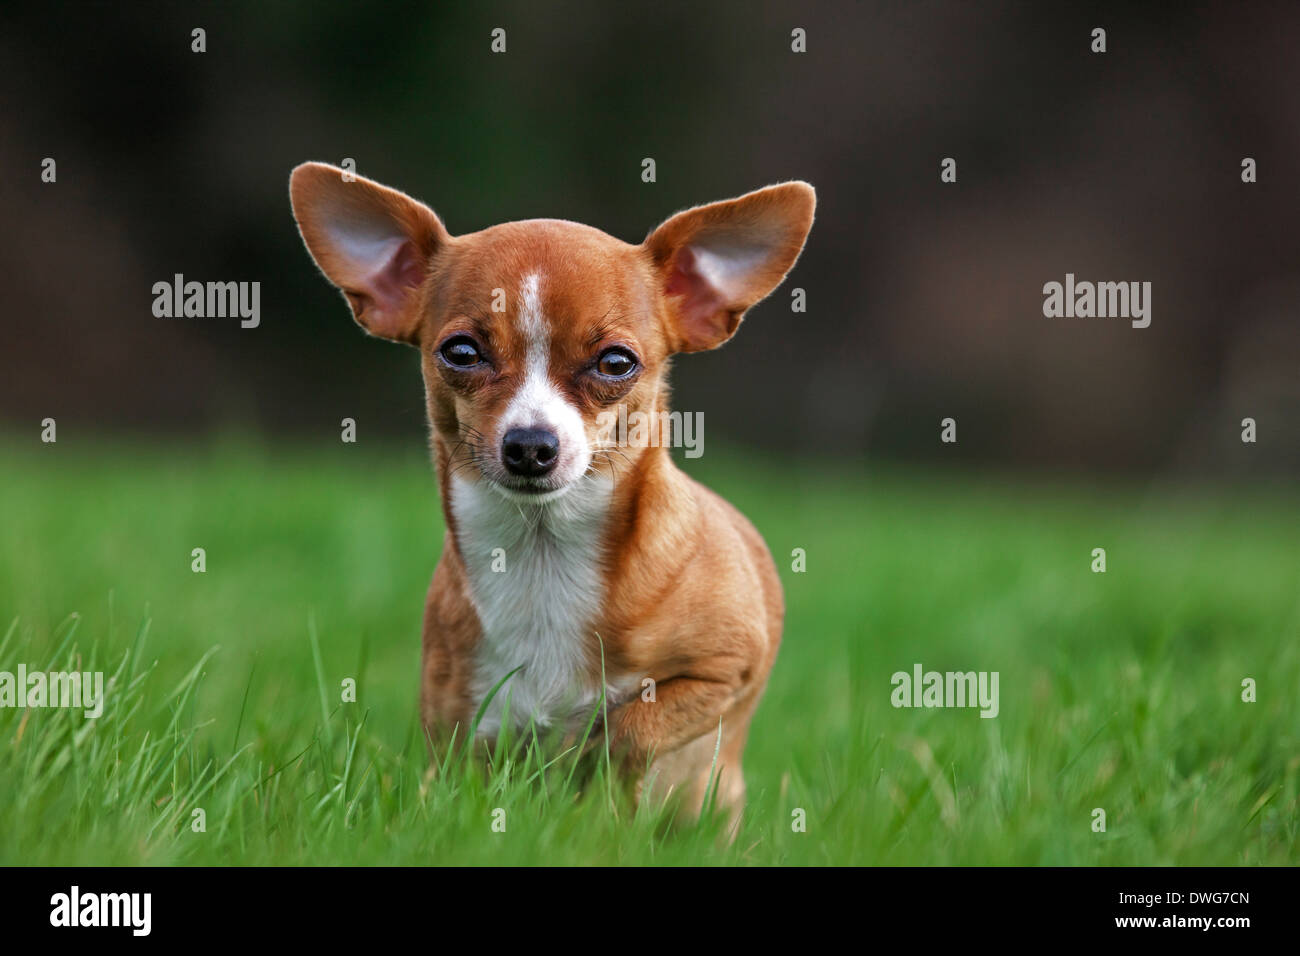 Short-haired tan Chihuahua in garden - Stock Image